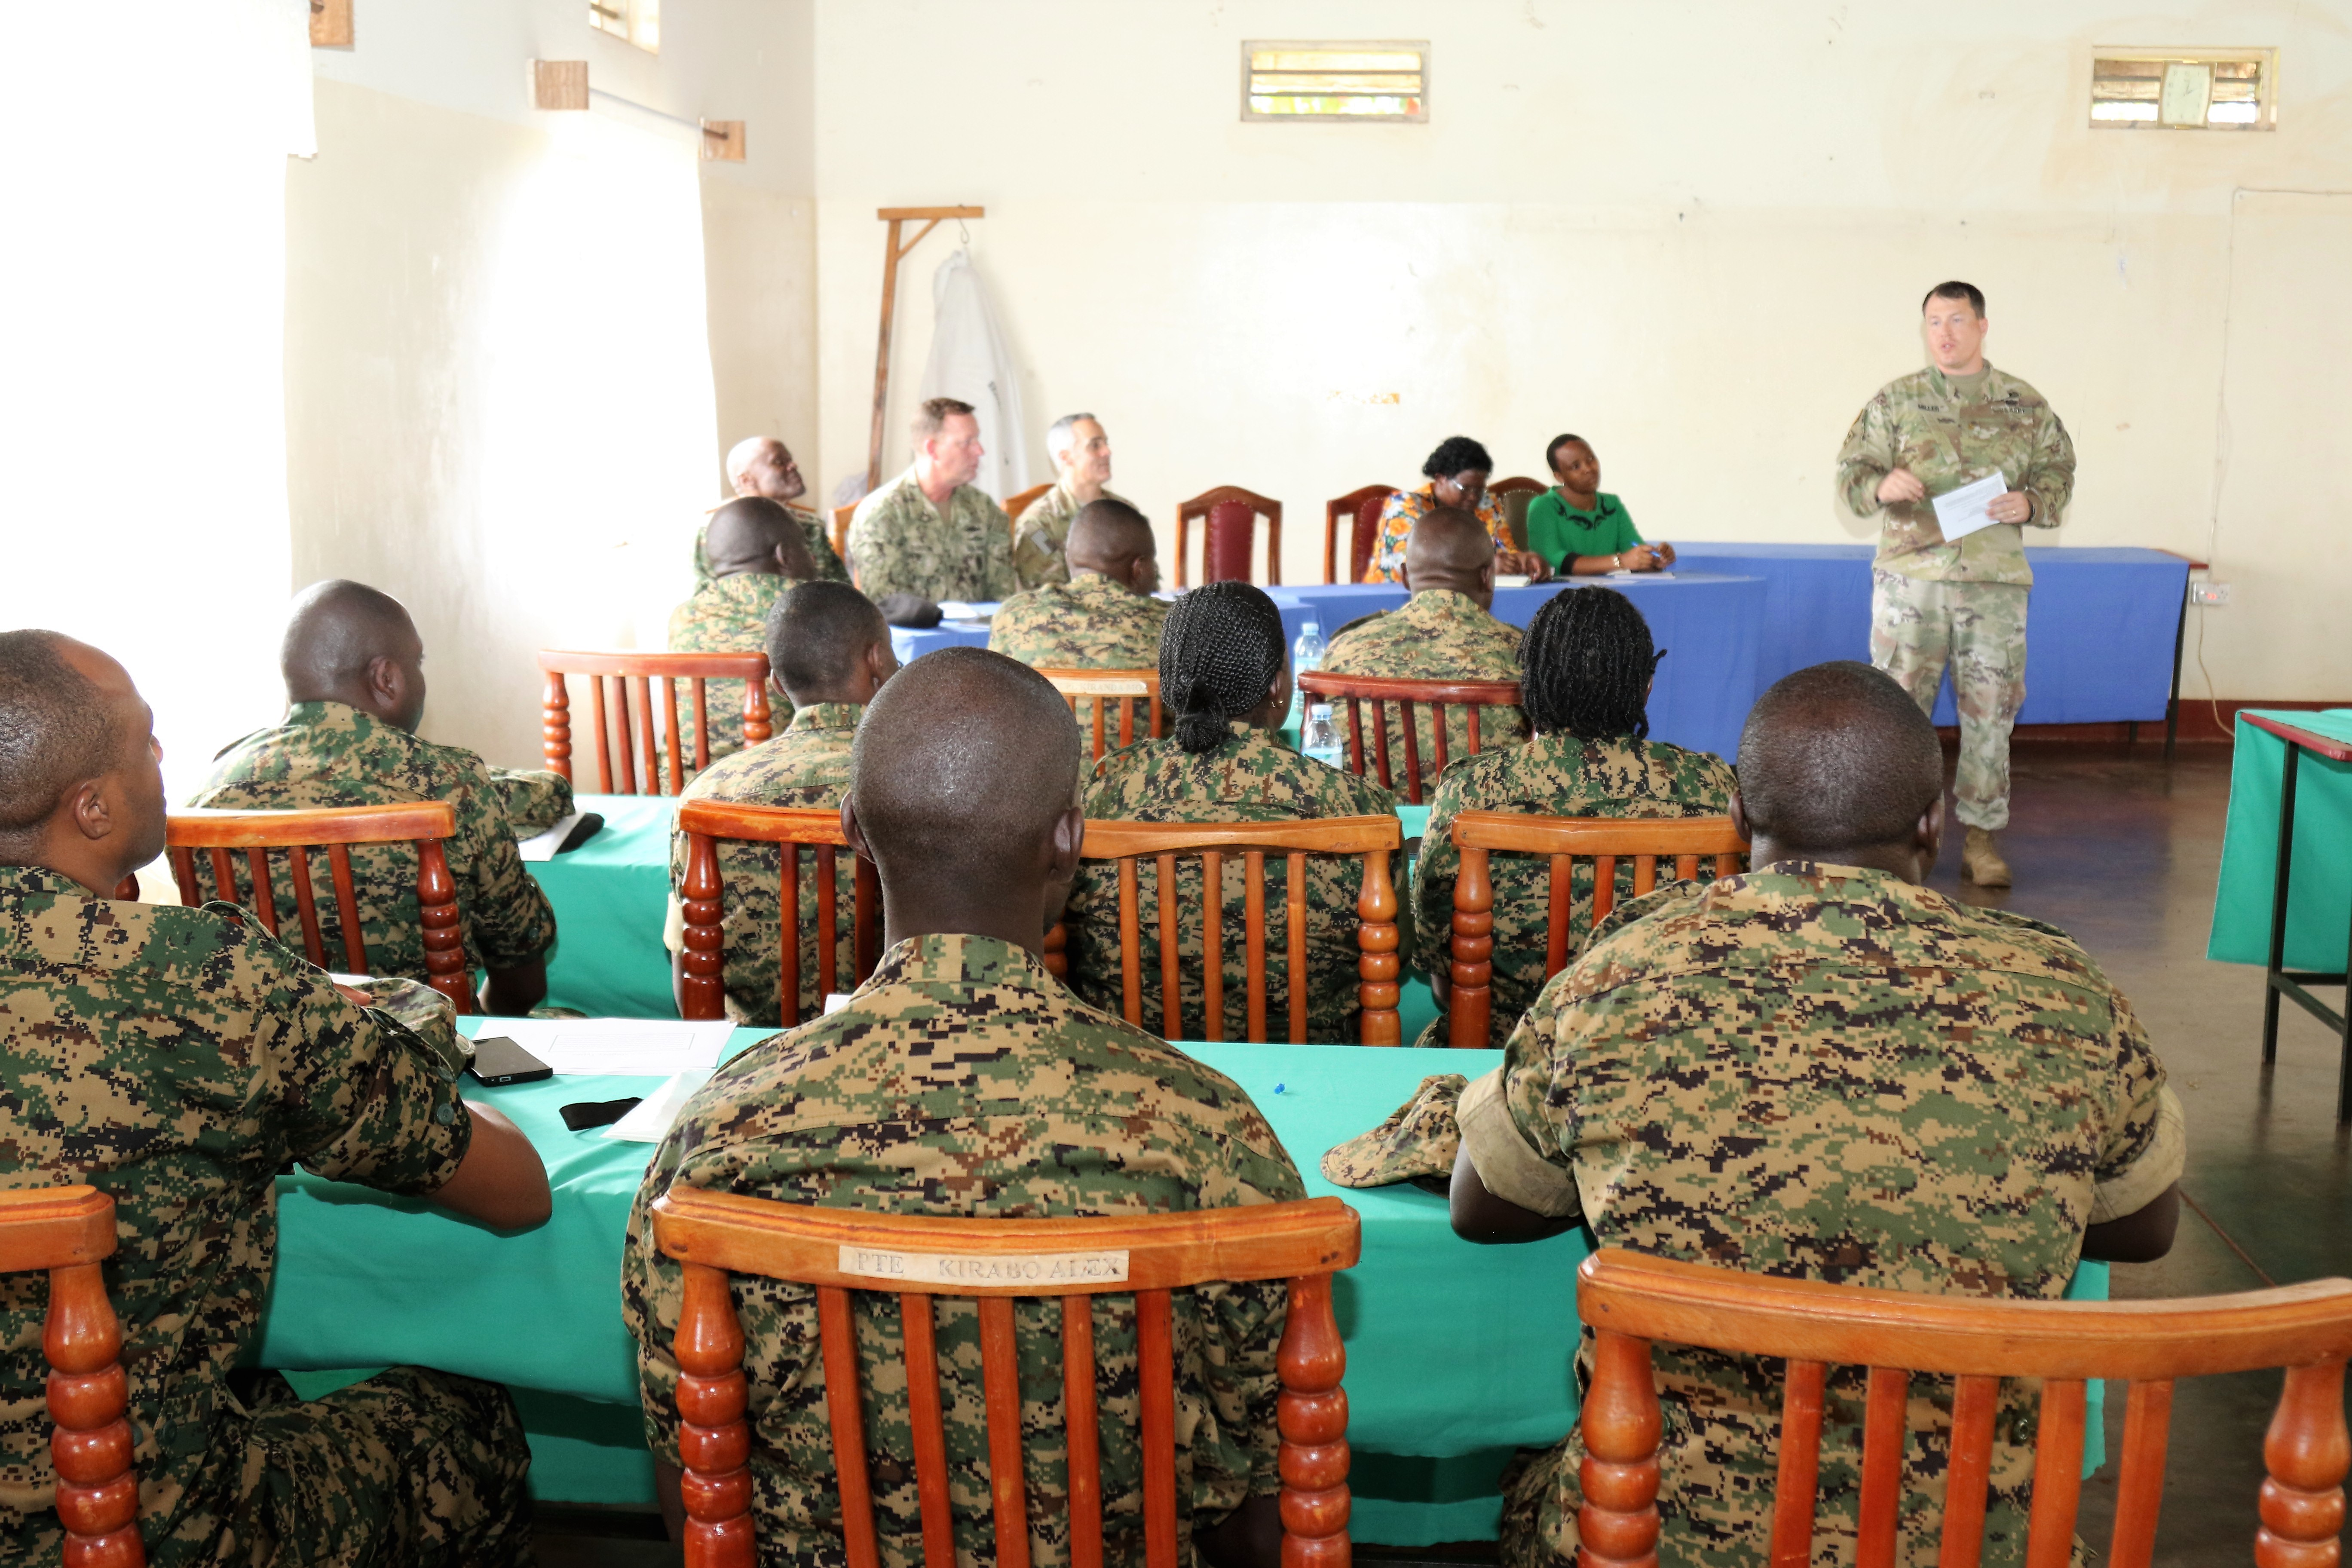 Uganda Peoples' Defence Force soldiers attend a graduation ceremony for a trauma nursing course taught by U.S. military medical personnel Aug. 16, 2018 in Jinga, Uganda. The course allowed students to not only learn technical skills, but also the skills needed in order to teach the course to other UPDF personnel.